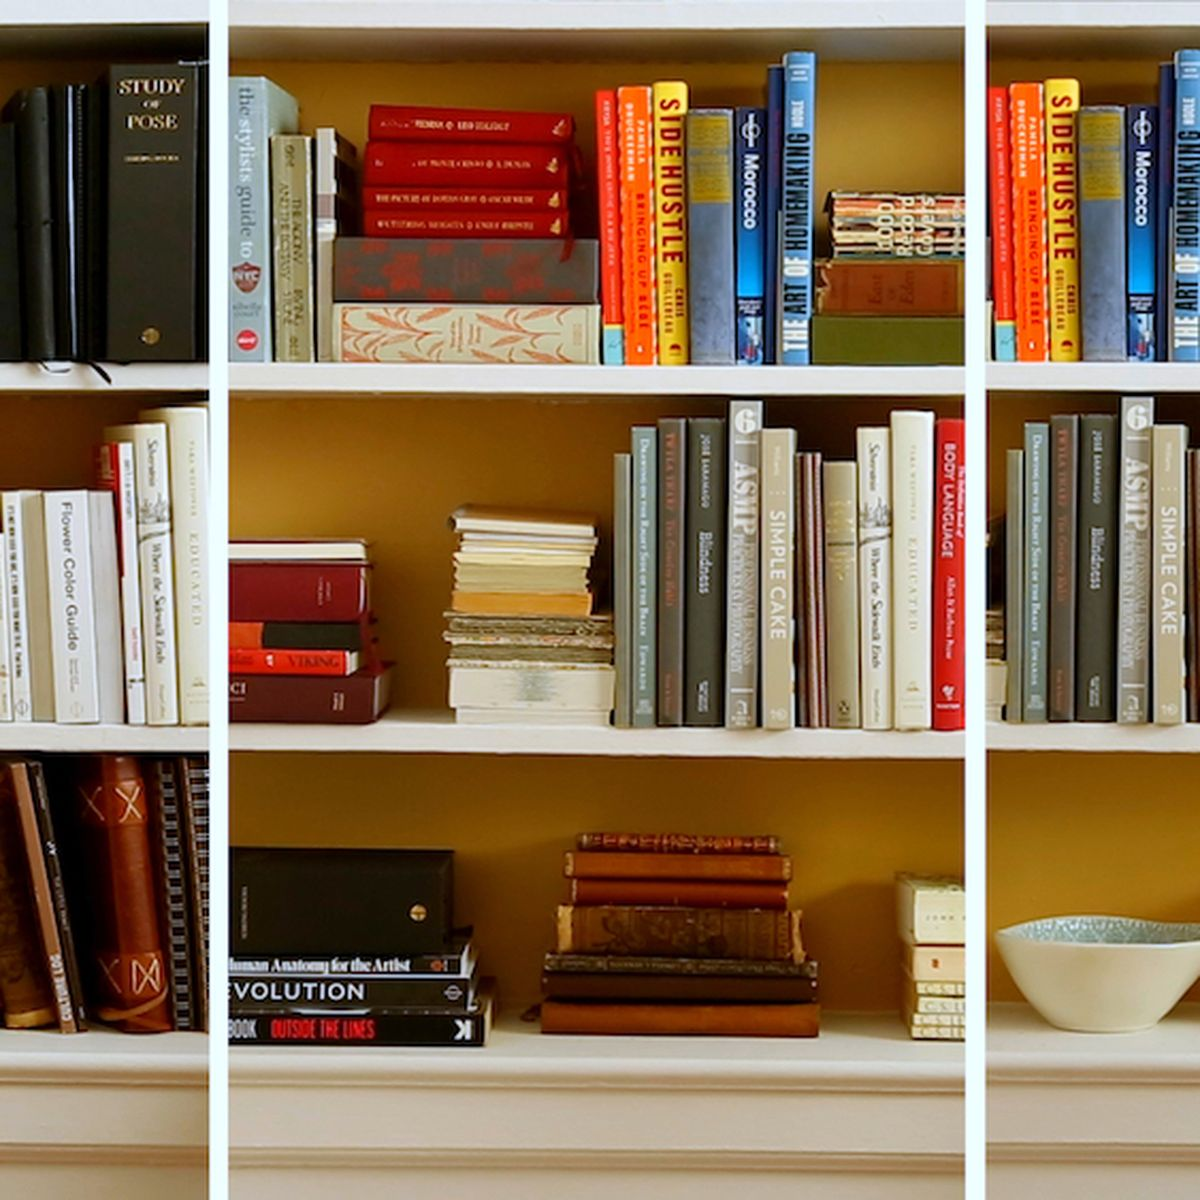 f5838e2a 5f65 4aae 9261 7ed69fbfd9dd 20200529 Home52 3 Ways to Style Bookshelves Final For Color New Resolve JW.00 00 04 21.Still004